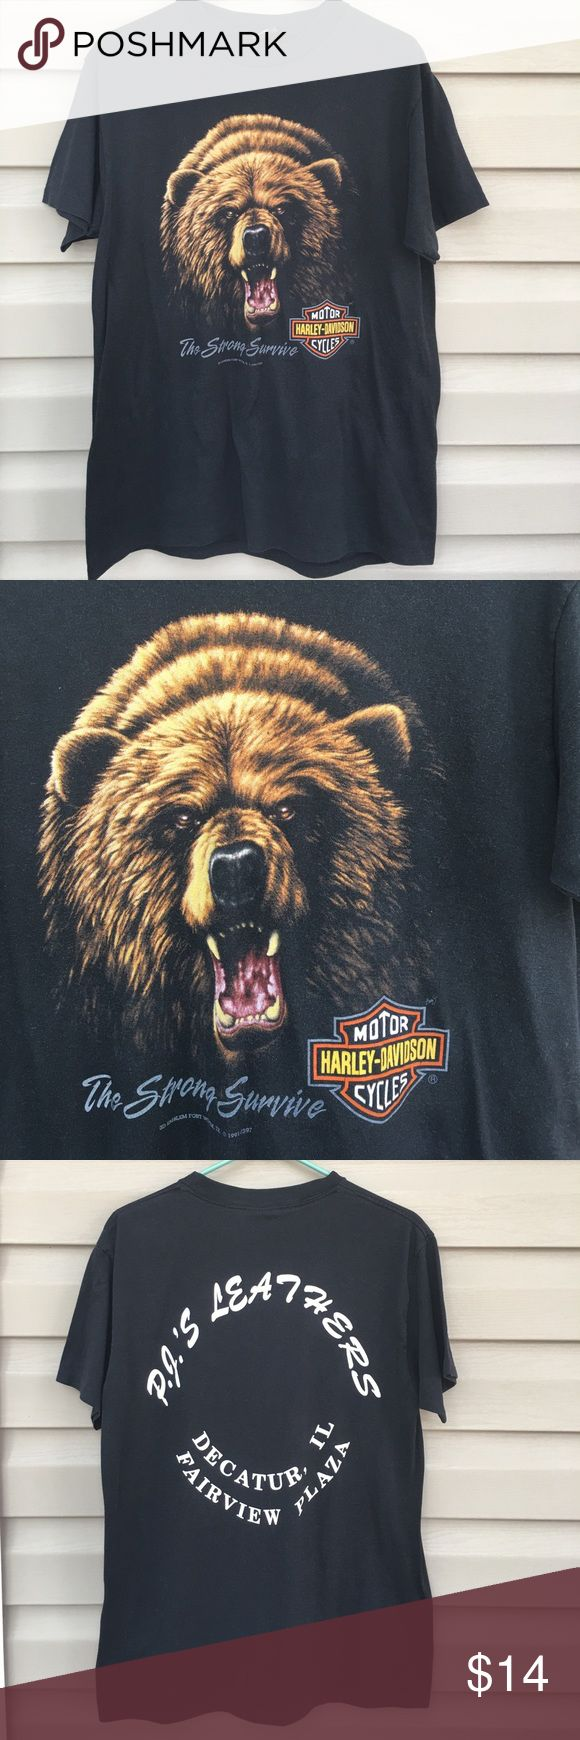 Harley Davidson black men's tee shirt Nice grizzly bear on front with'The Strong Survive, 3D emblem Fort Worth, TX 1991 on front, PJ's Leathers on back in white print, Decatur, IL 50% cotton 50% polyester, no stains or holes Harley-Davidson Shirts Tees - Short Sleeve